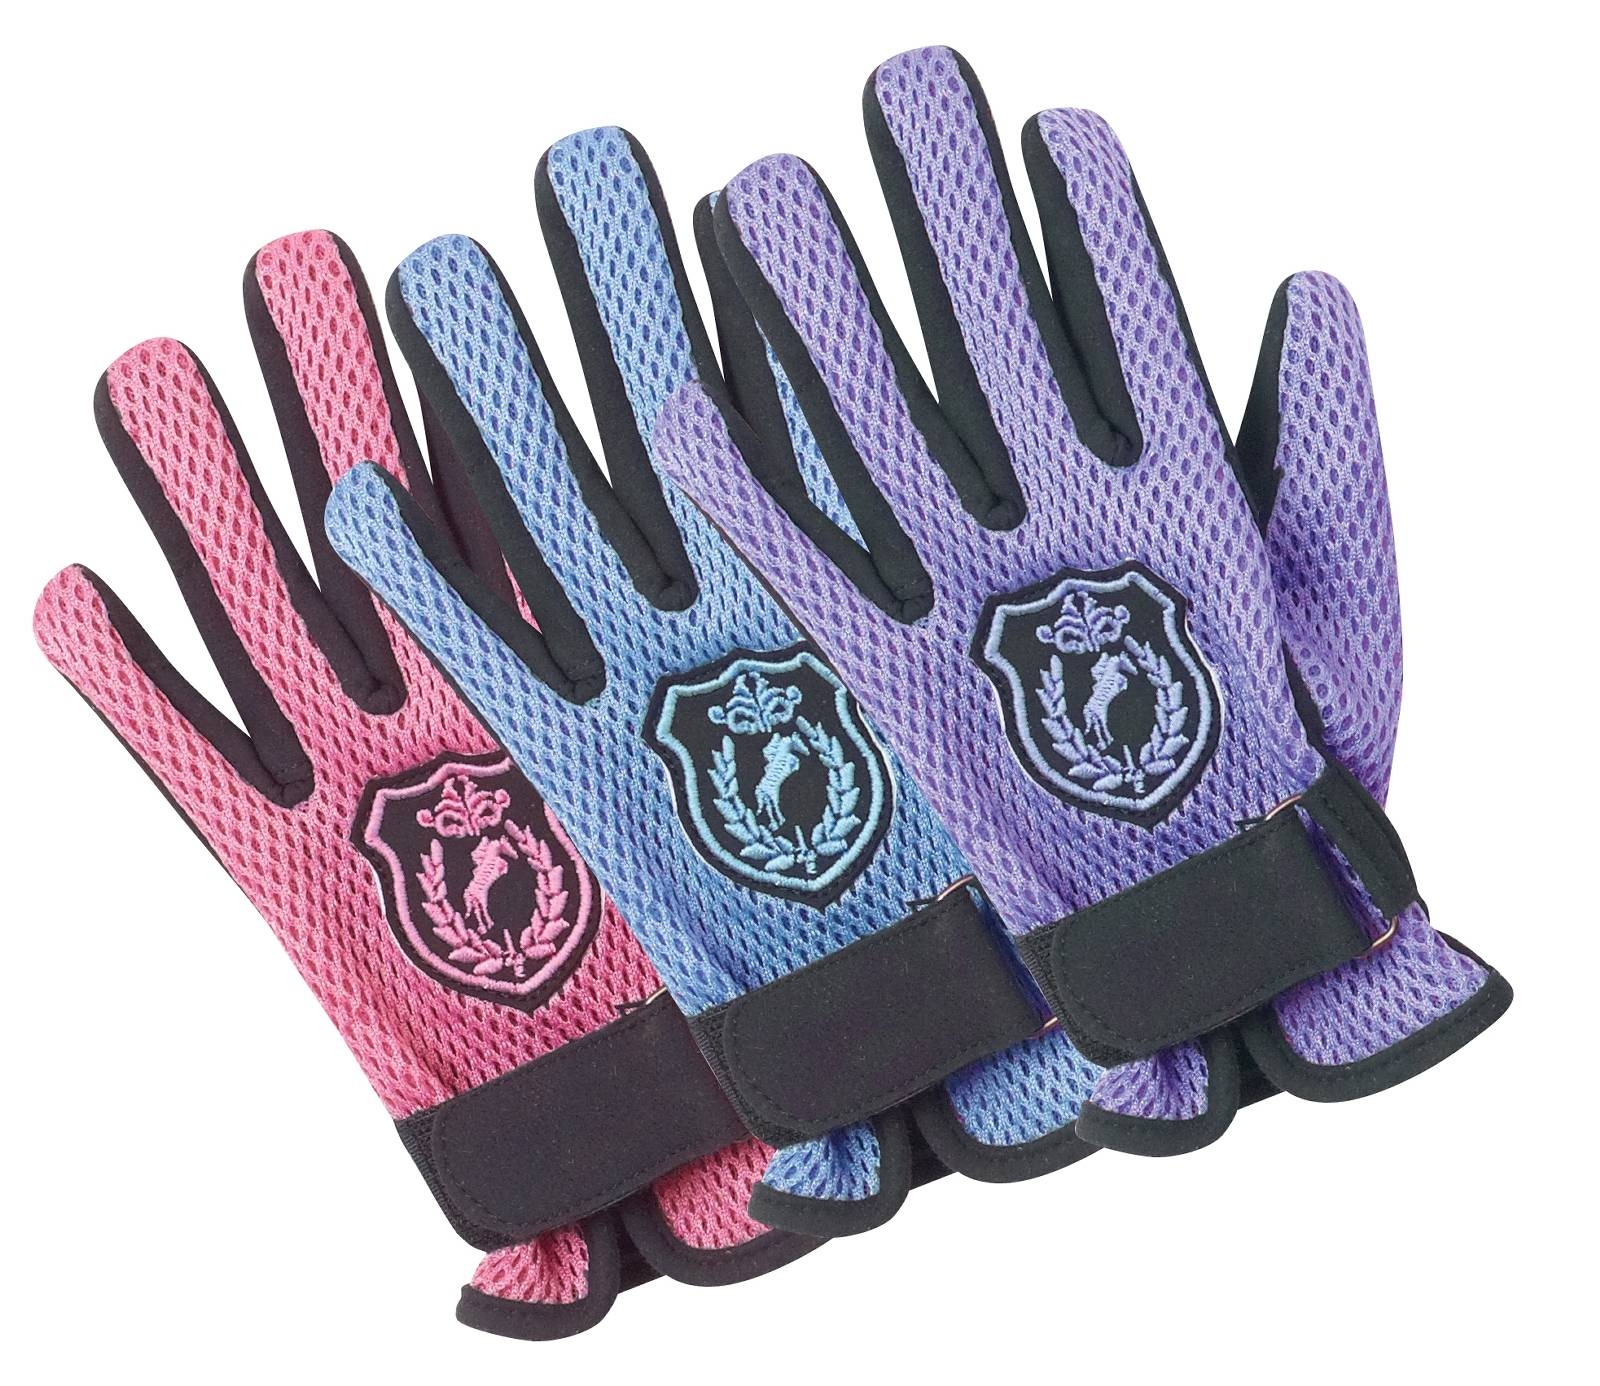 Ovation Mesh Back Glove - Kids, Horse Crest